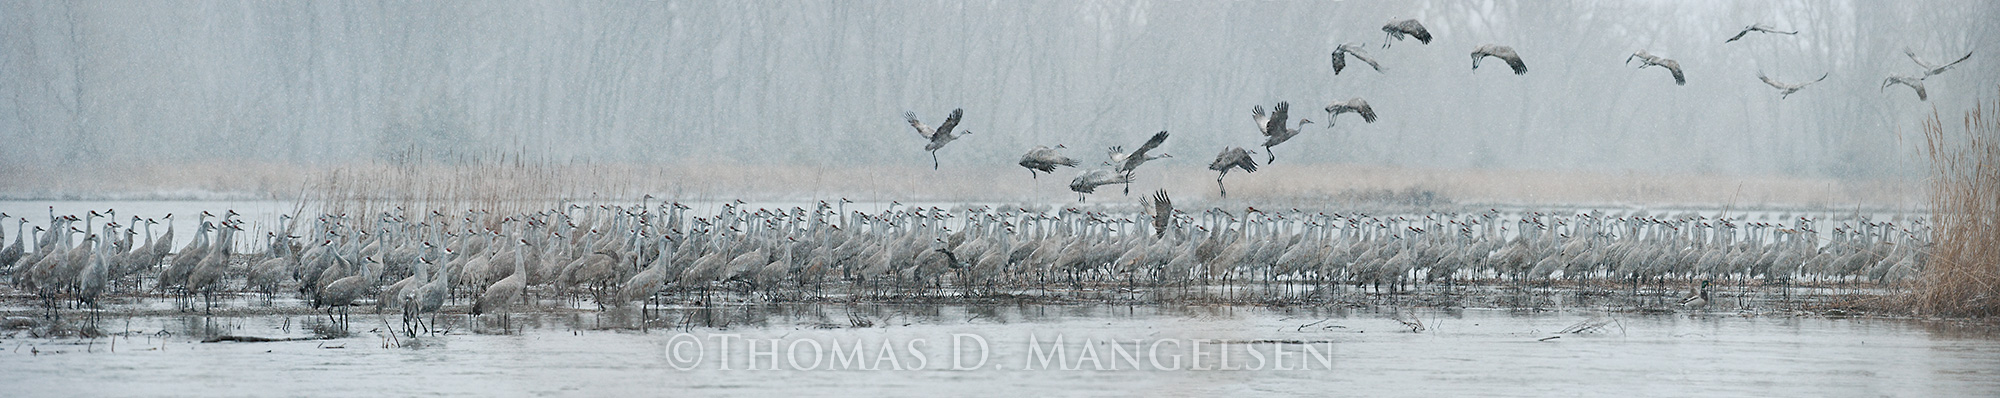 Mangelsen's masterwork titled Cranes of the Grey Wind from his Legacy Reserve Collection